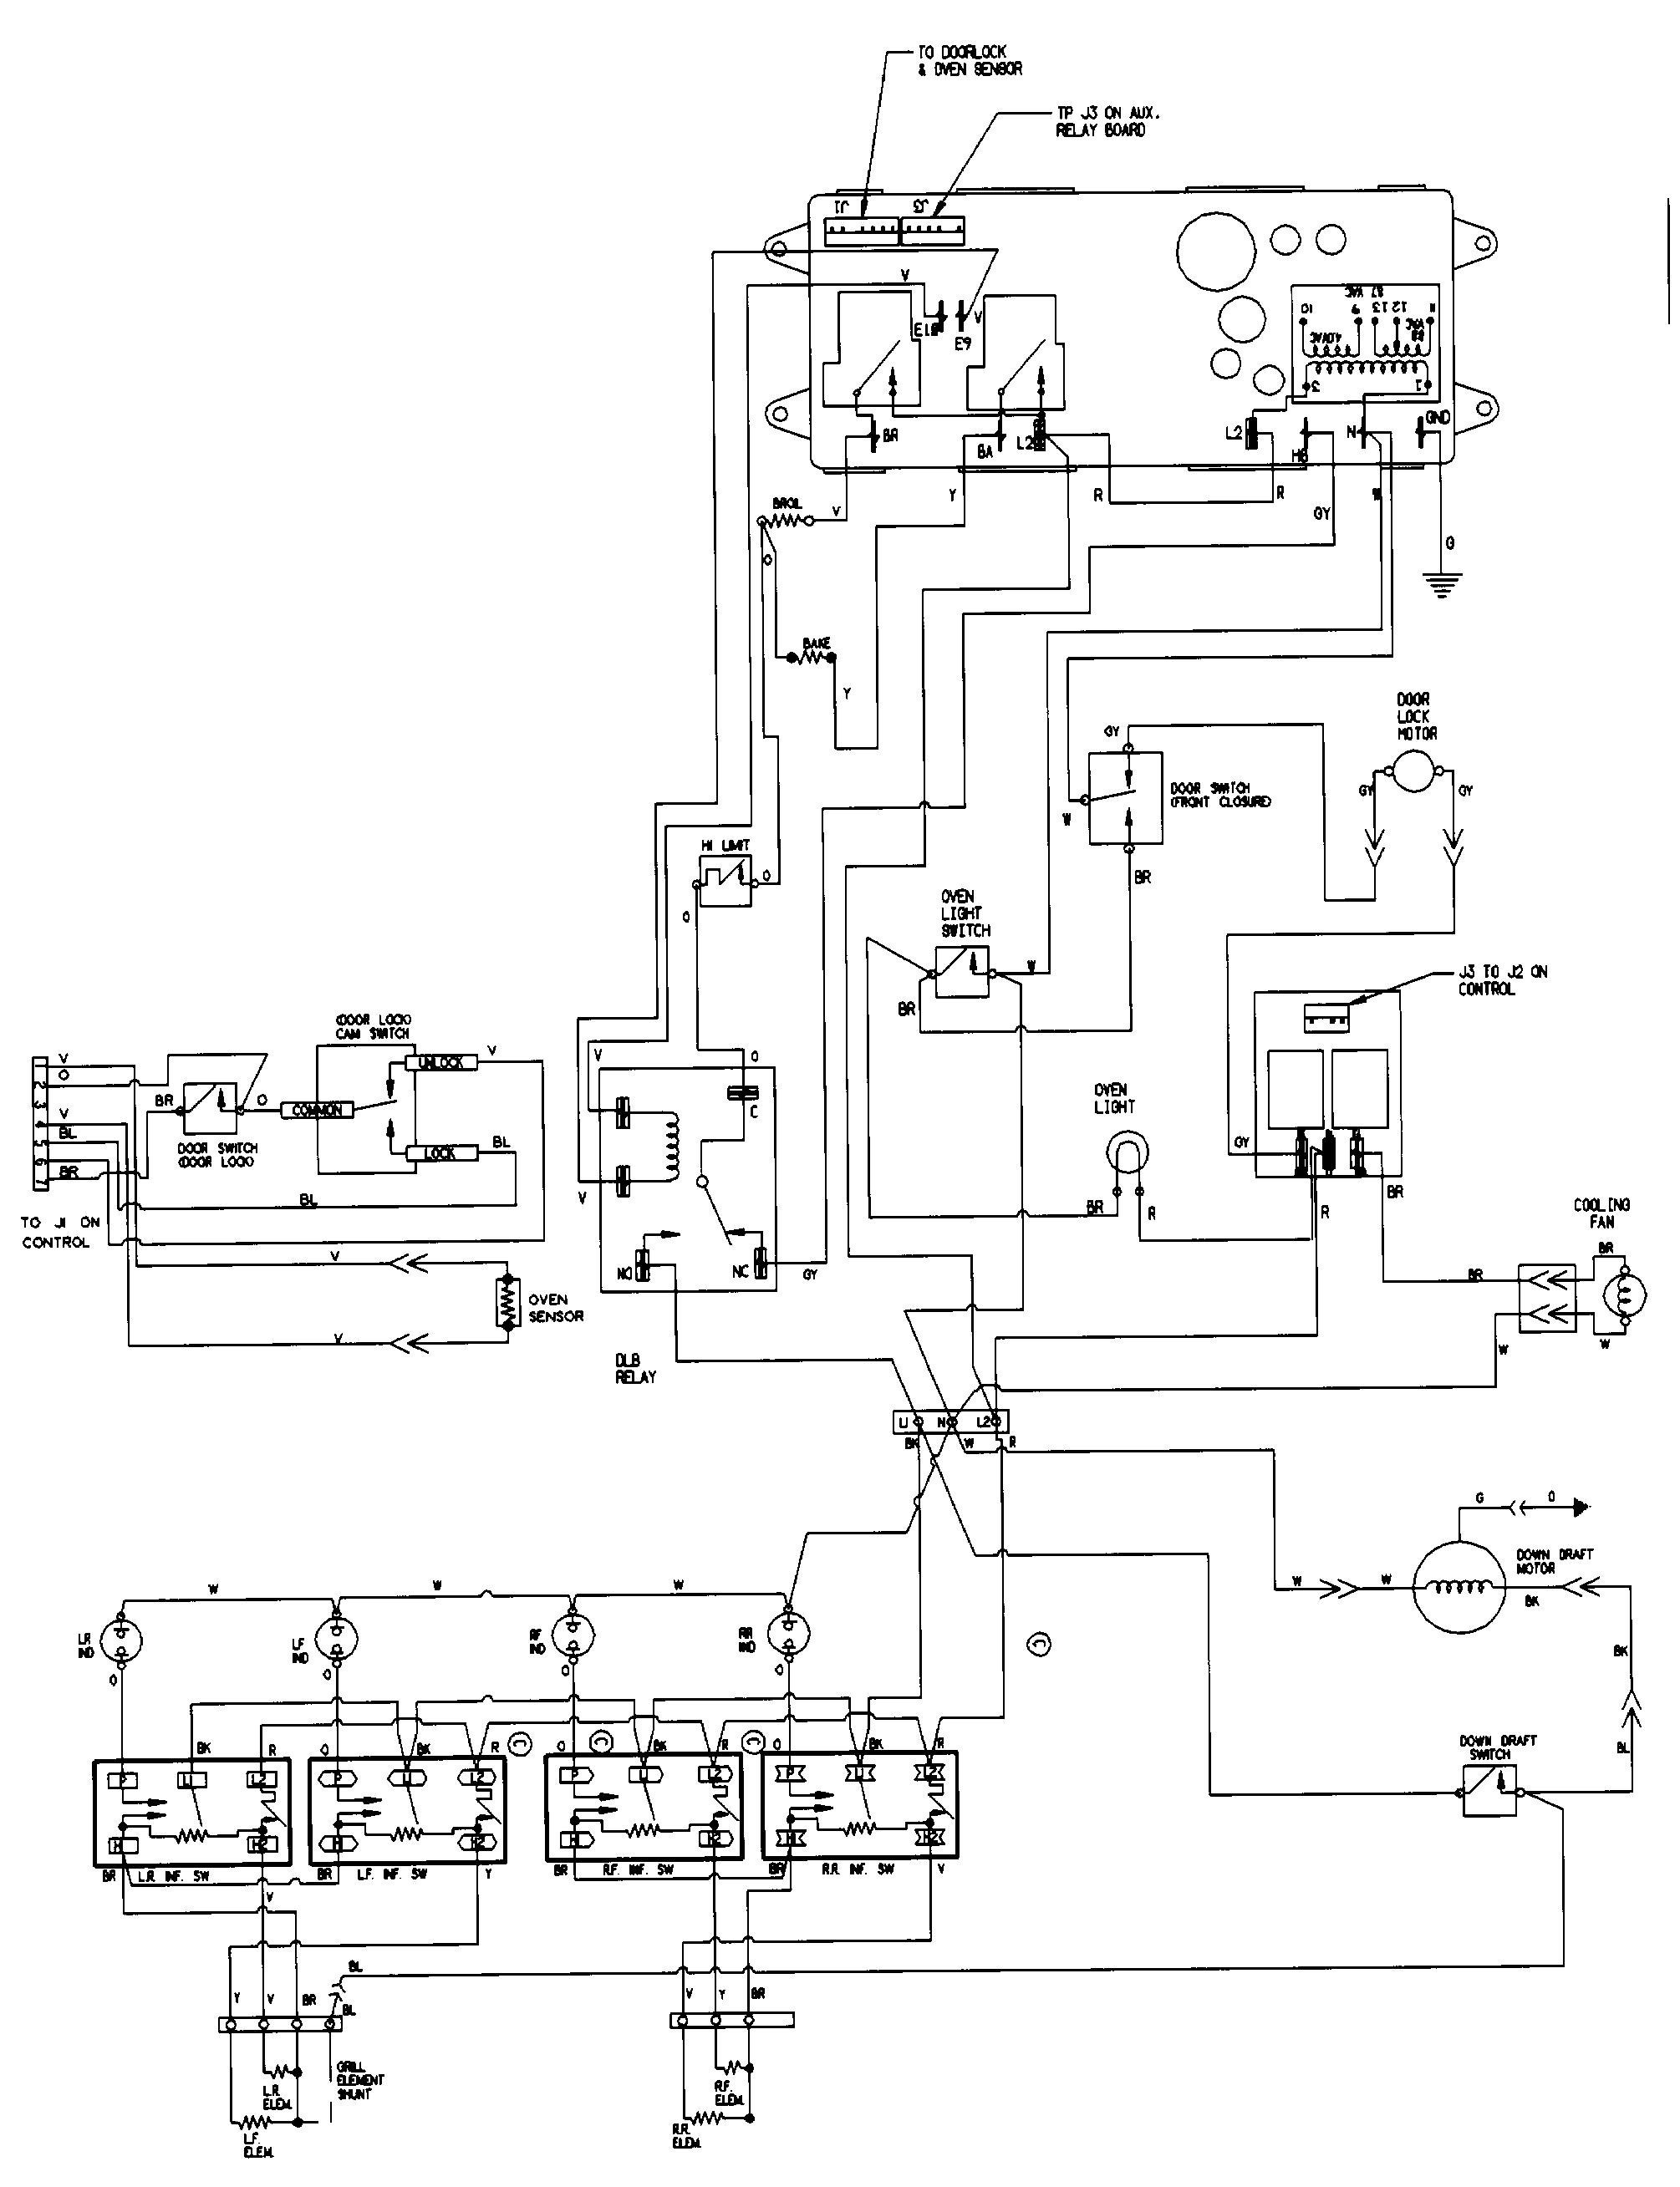 Honda Babj 1501711 Wiring Harness Diagram Detailed Diagrams Cb250 St1100 Ducati 996